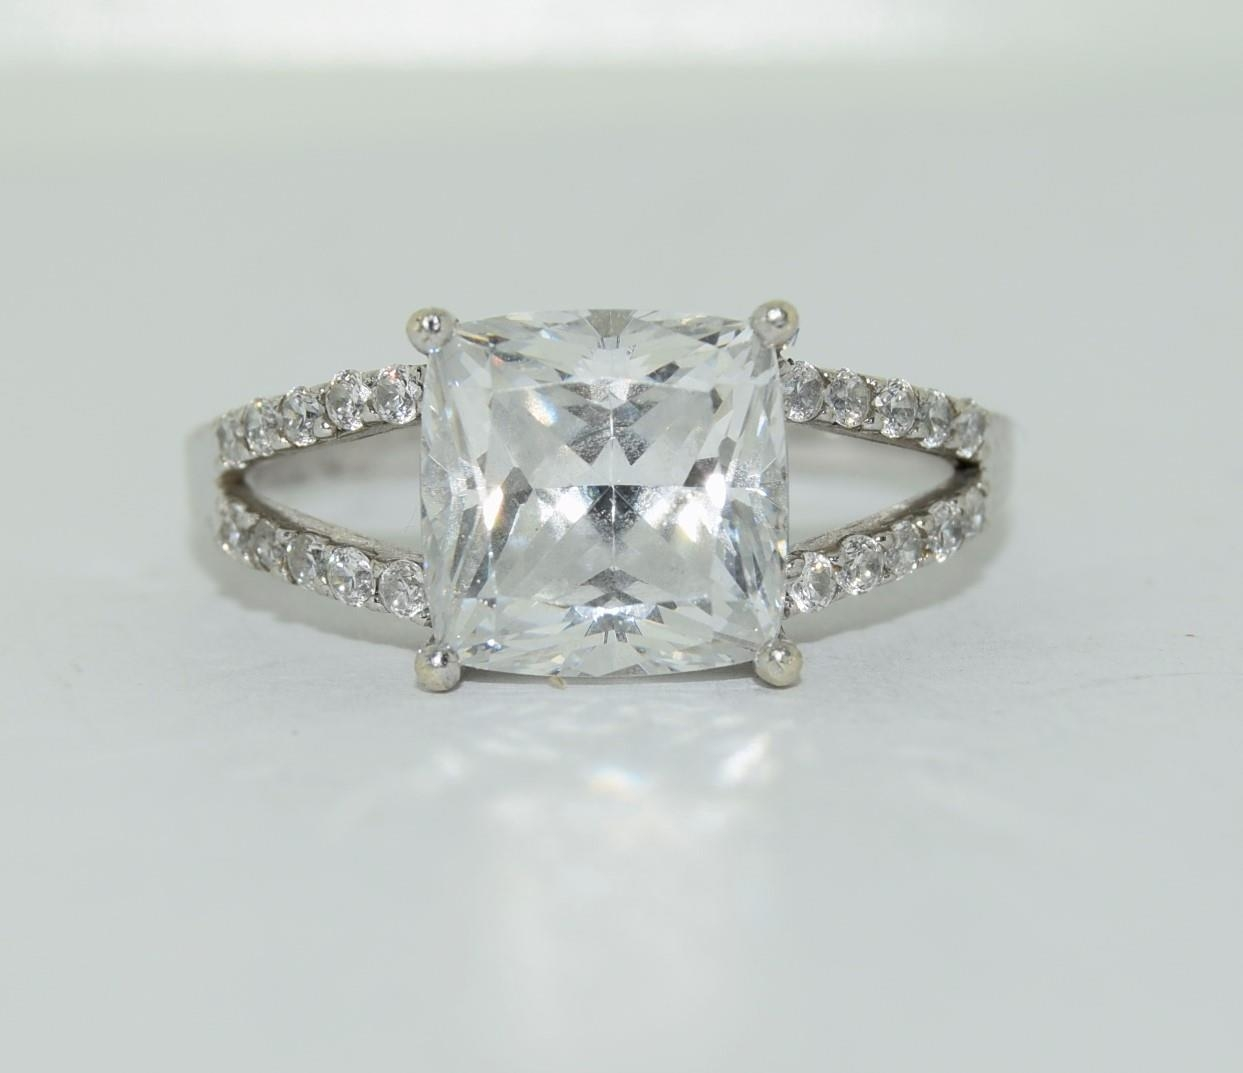 9ct white gold ladies square set solitare ring size R - Image 2 of 12